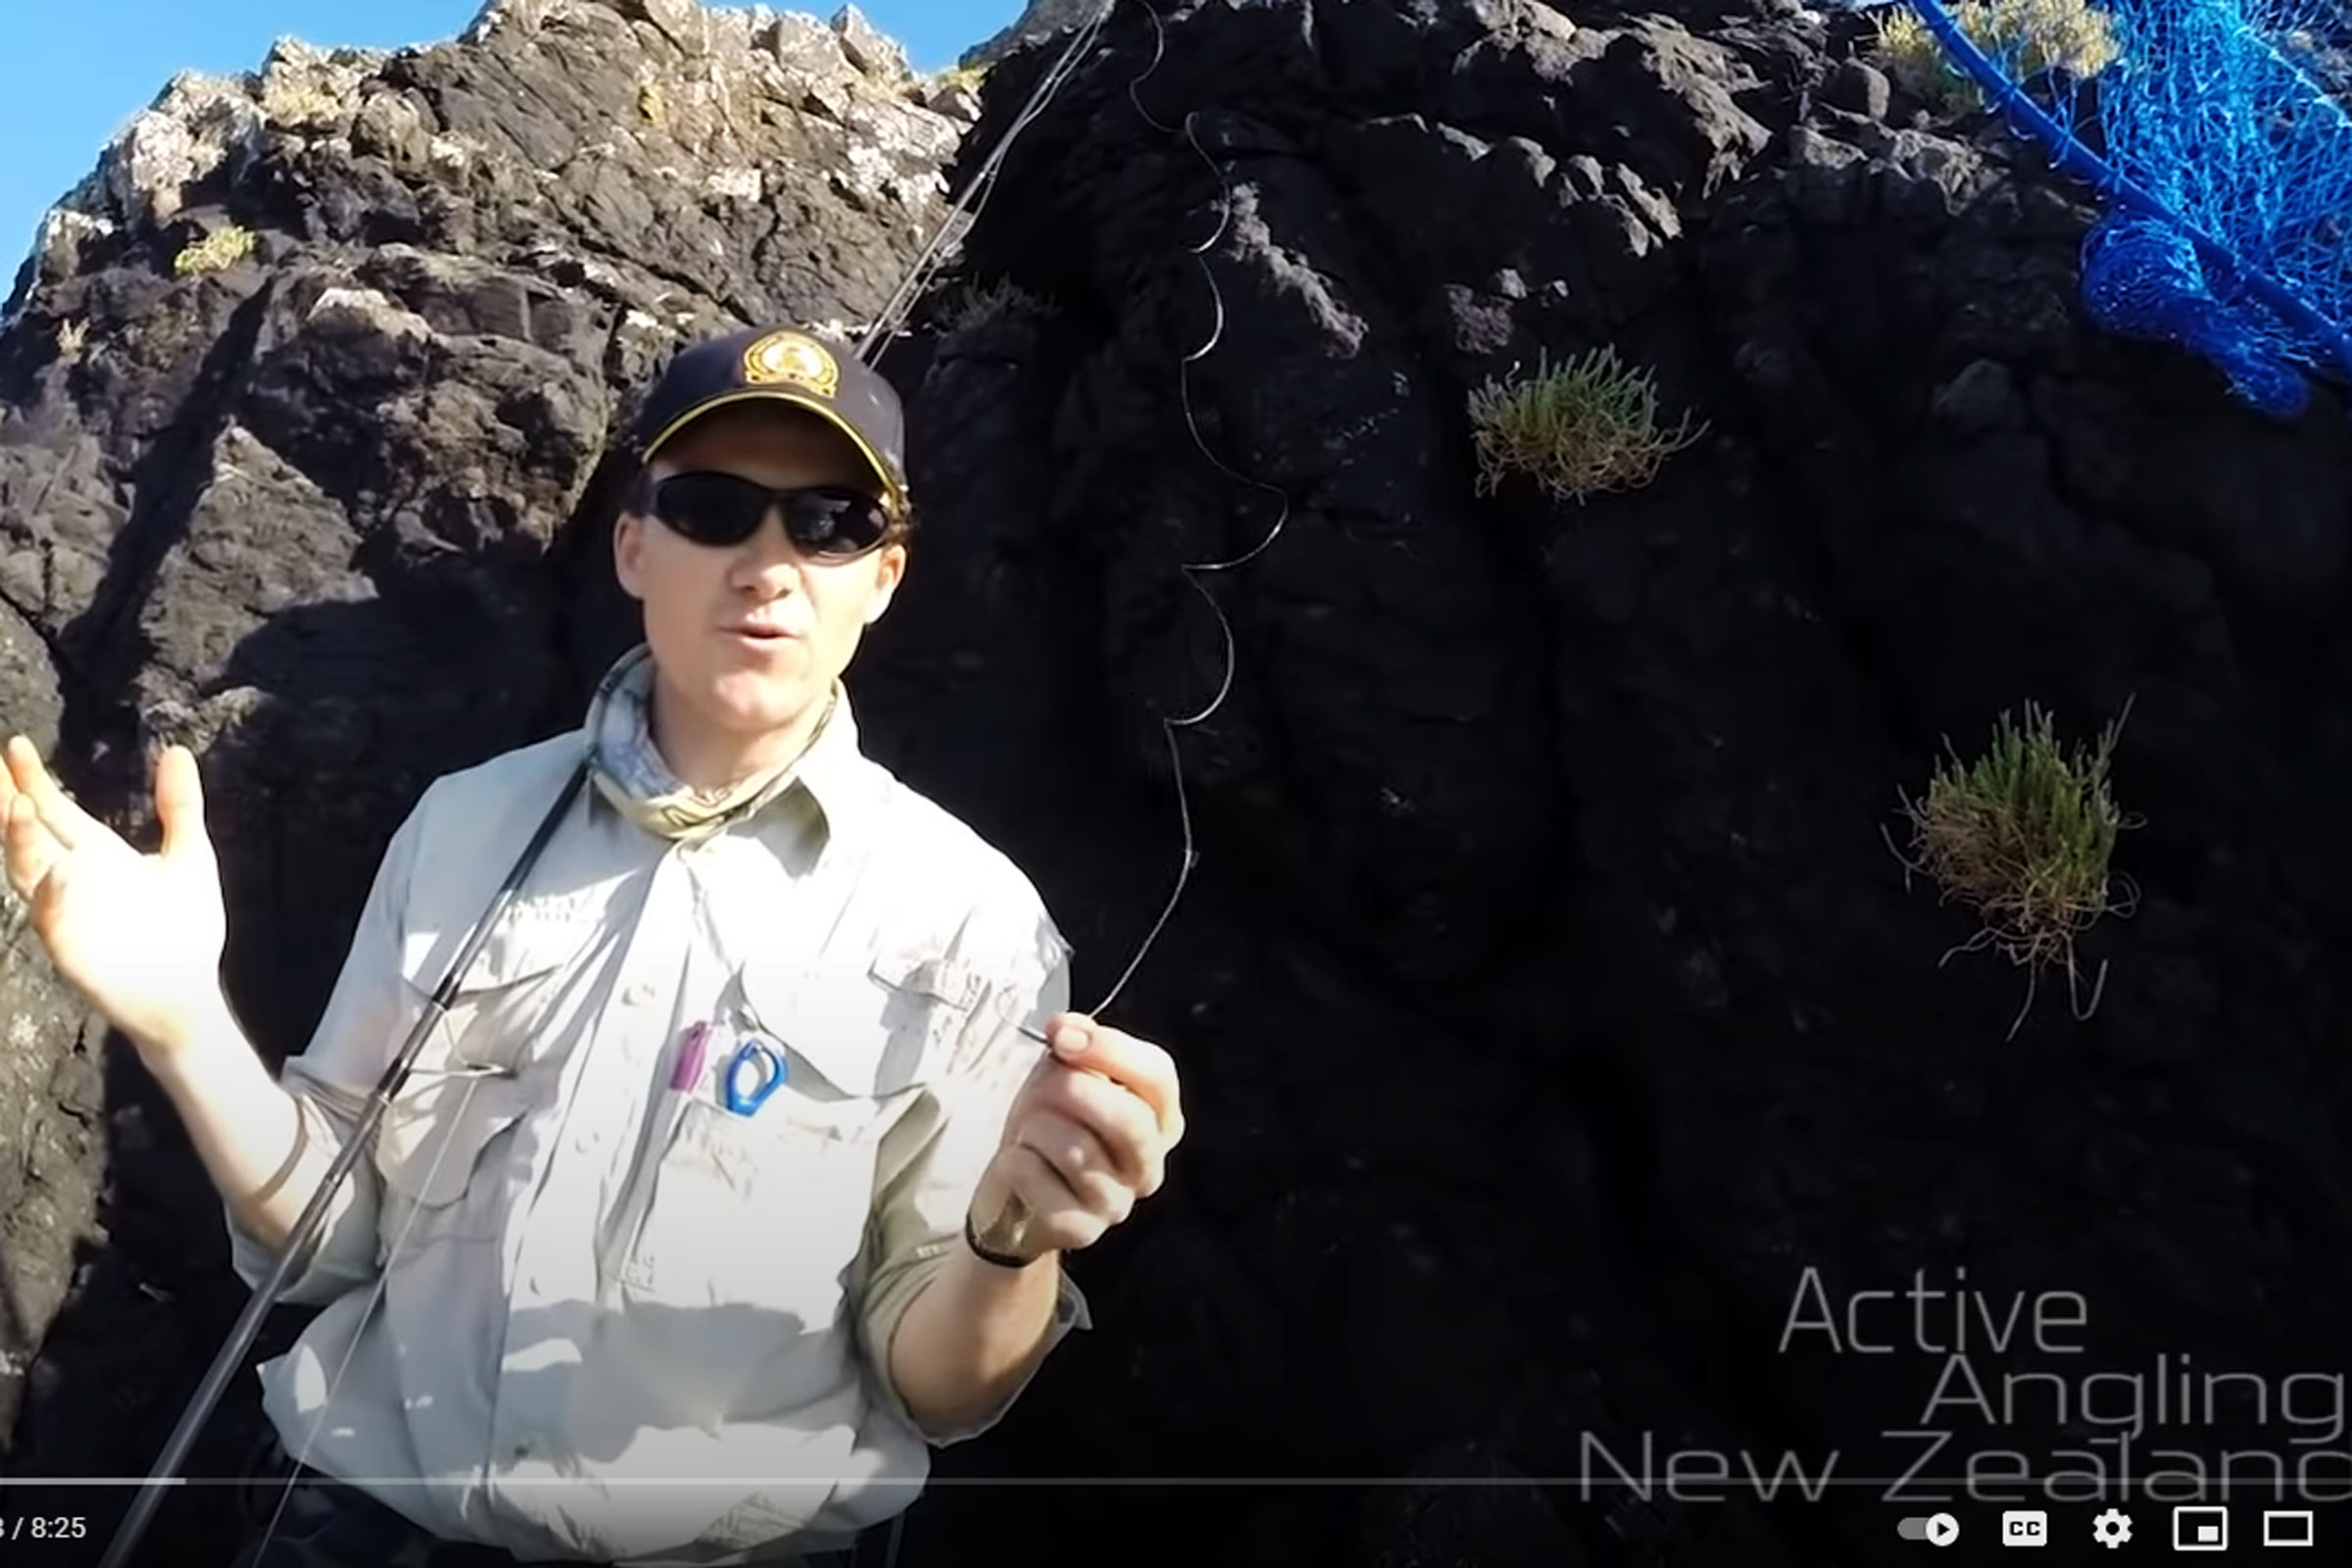 Soft baiting from the rocks - tips and techniques